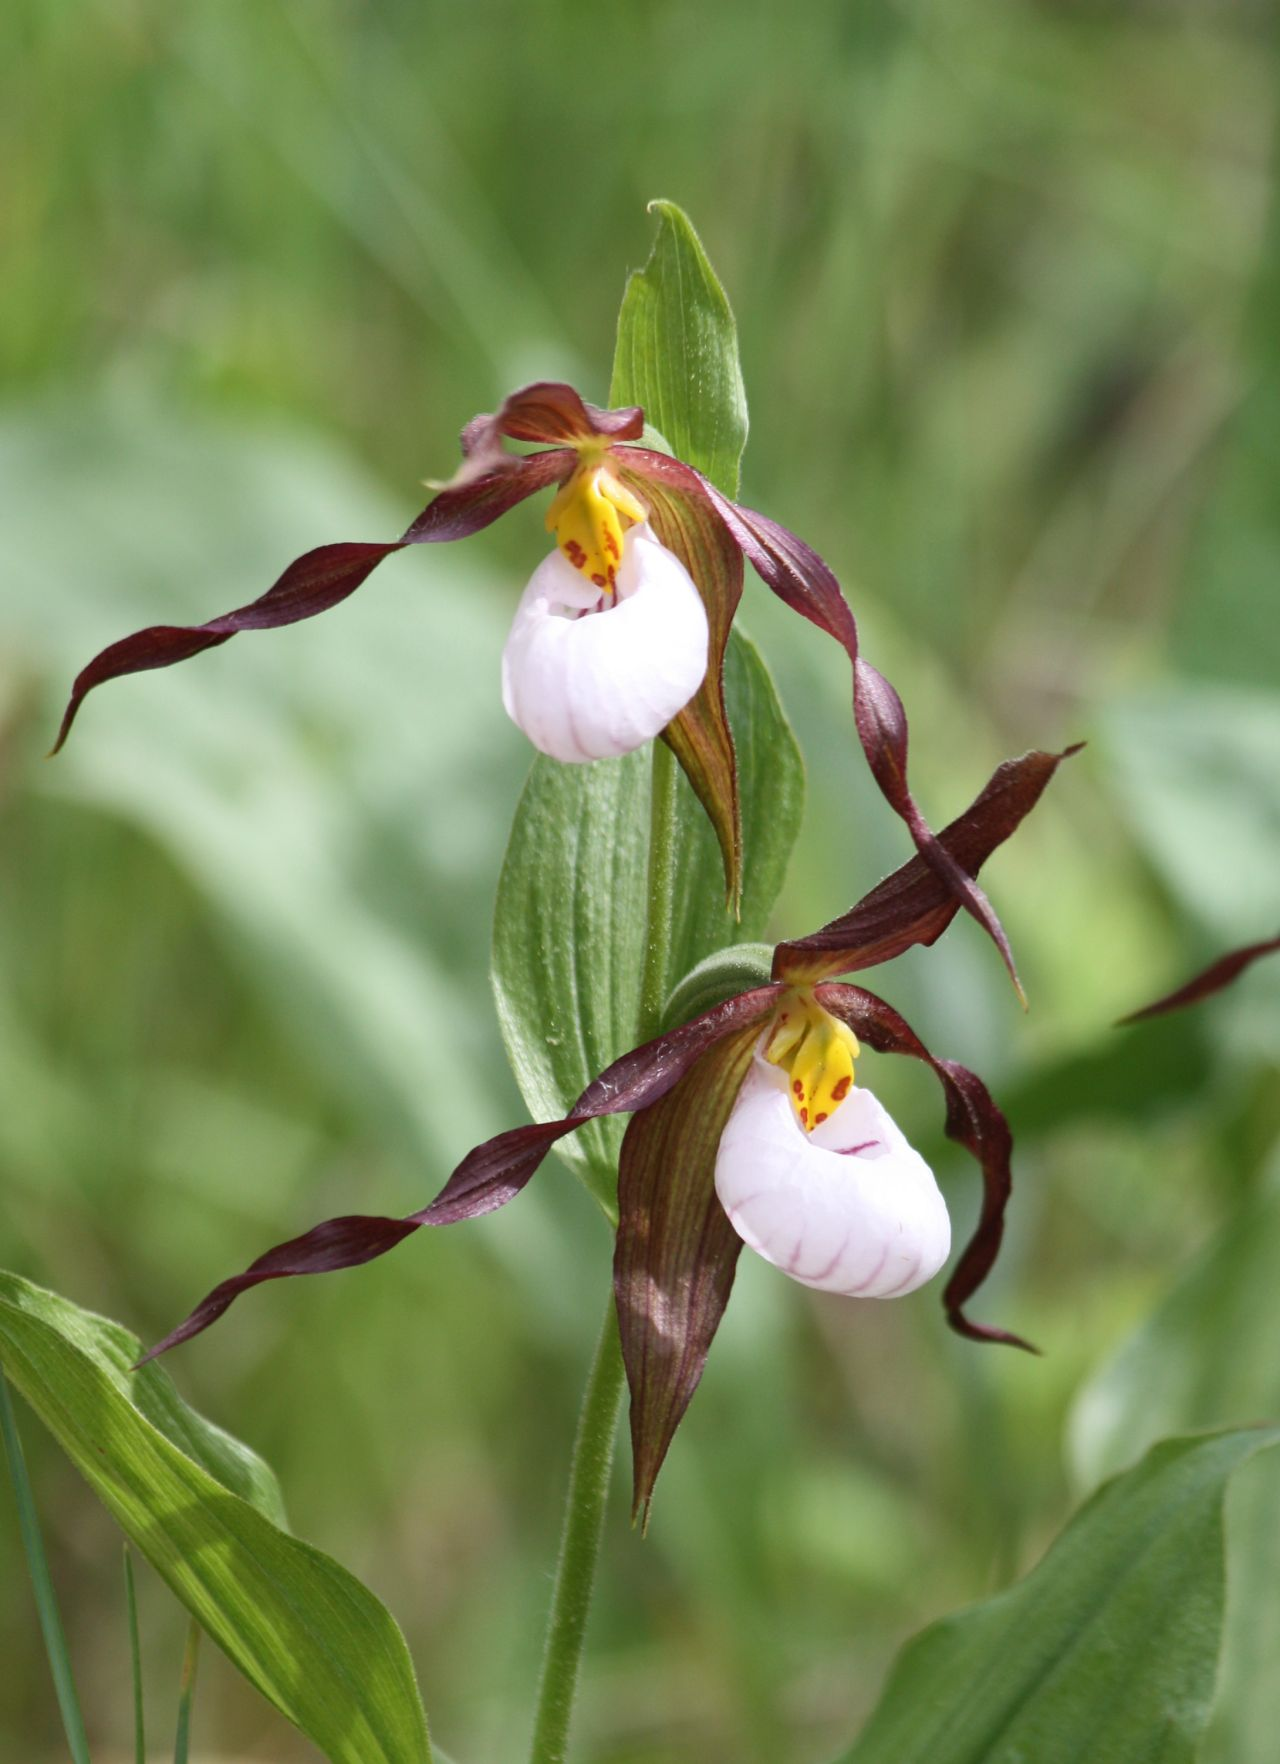 A scape of C. montanum bearing two flowers.